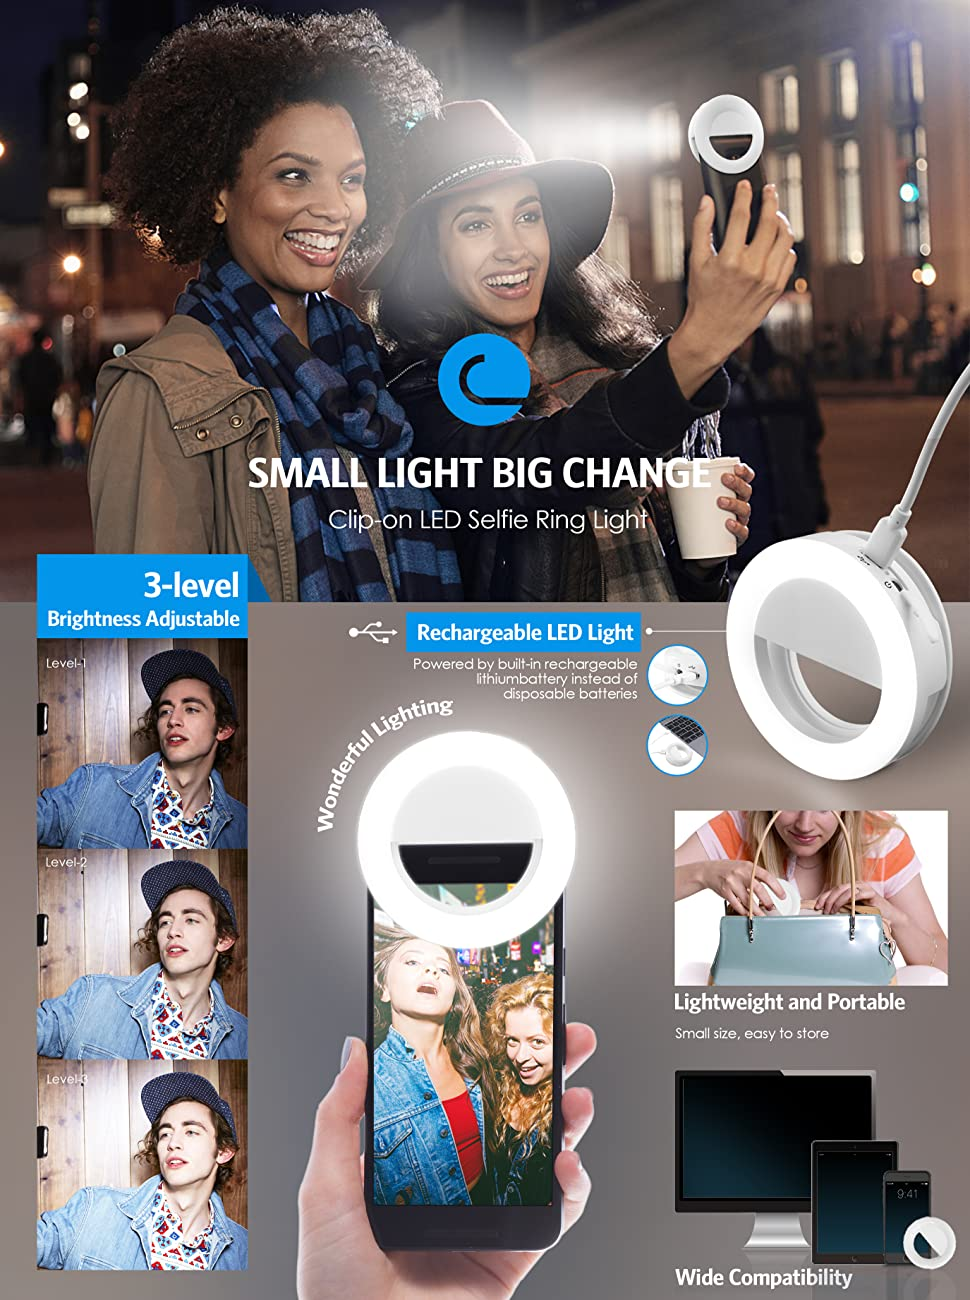 Criacr Selfie Ring Light Clip-on LED Camera Light Rechargeable 33 LED Fill-light 3-Level Adjustable Brightness On-Camera Video Lights Night Light for ...  sc 1 st  Amazon.com & Amazon.com: Criacr Selfie Ring Light Clip-on Phone Selfie Light for ...